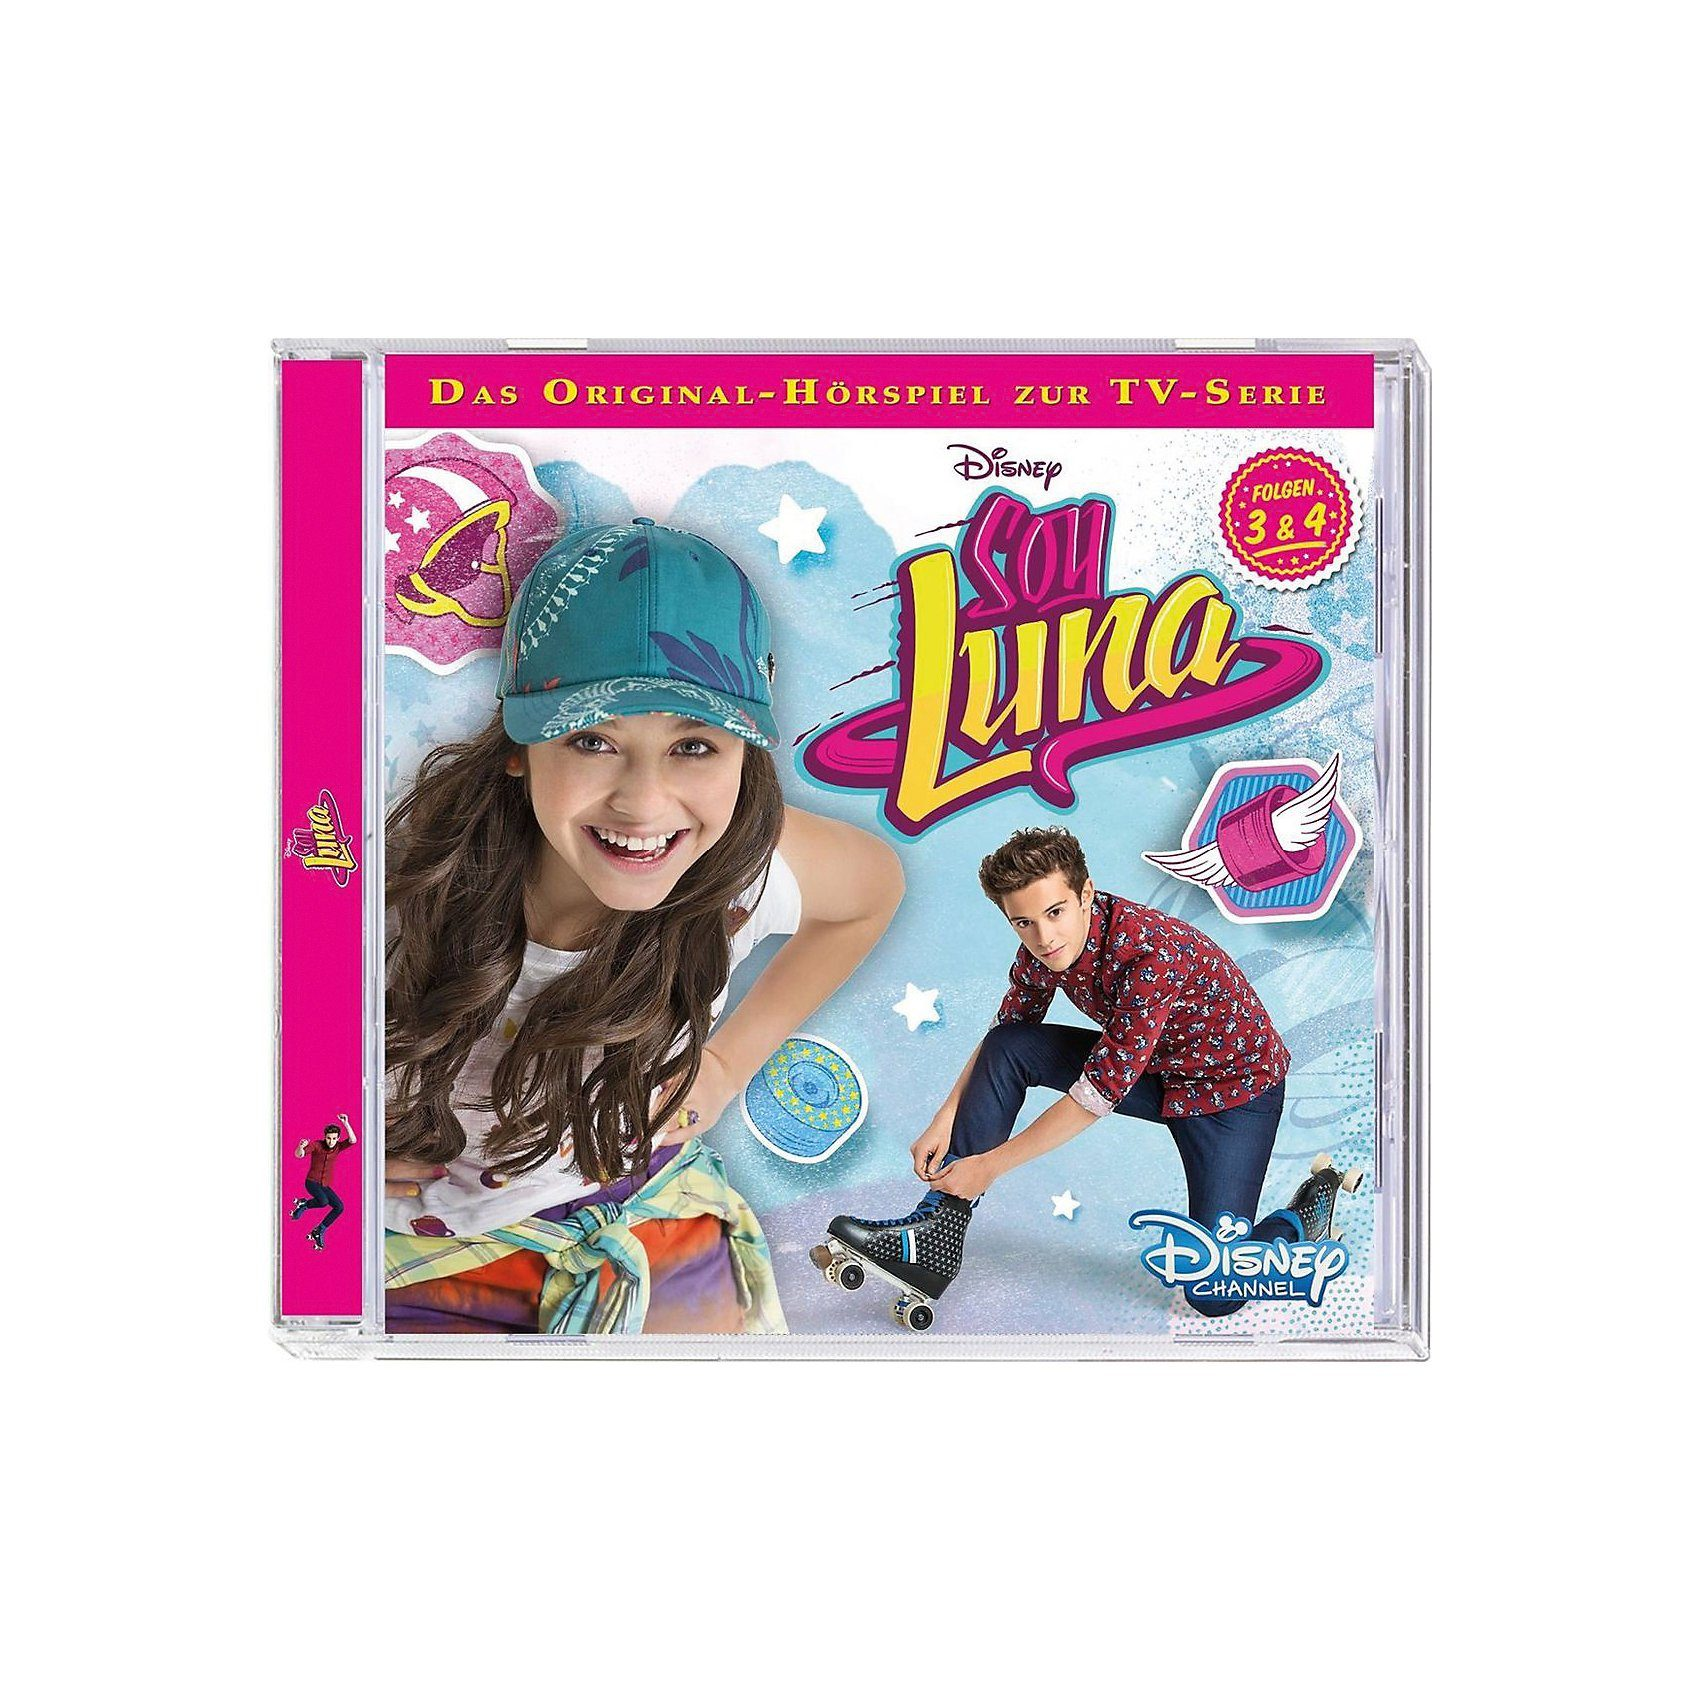 Kiddinx CD Disney Soy Luna (Folge 3+4)